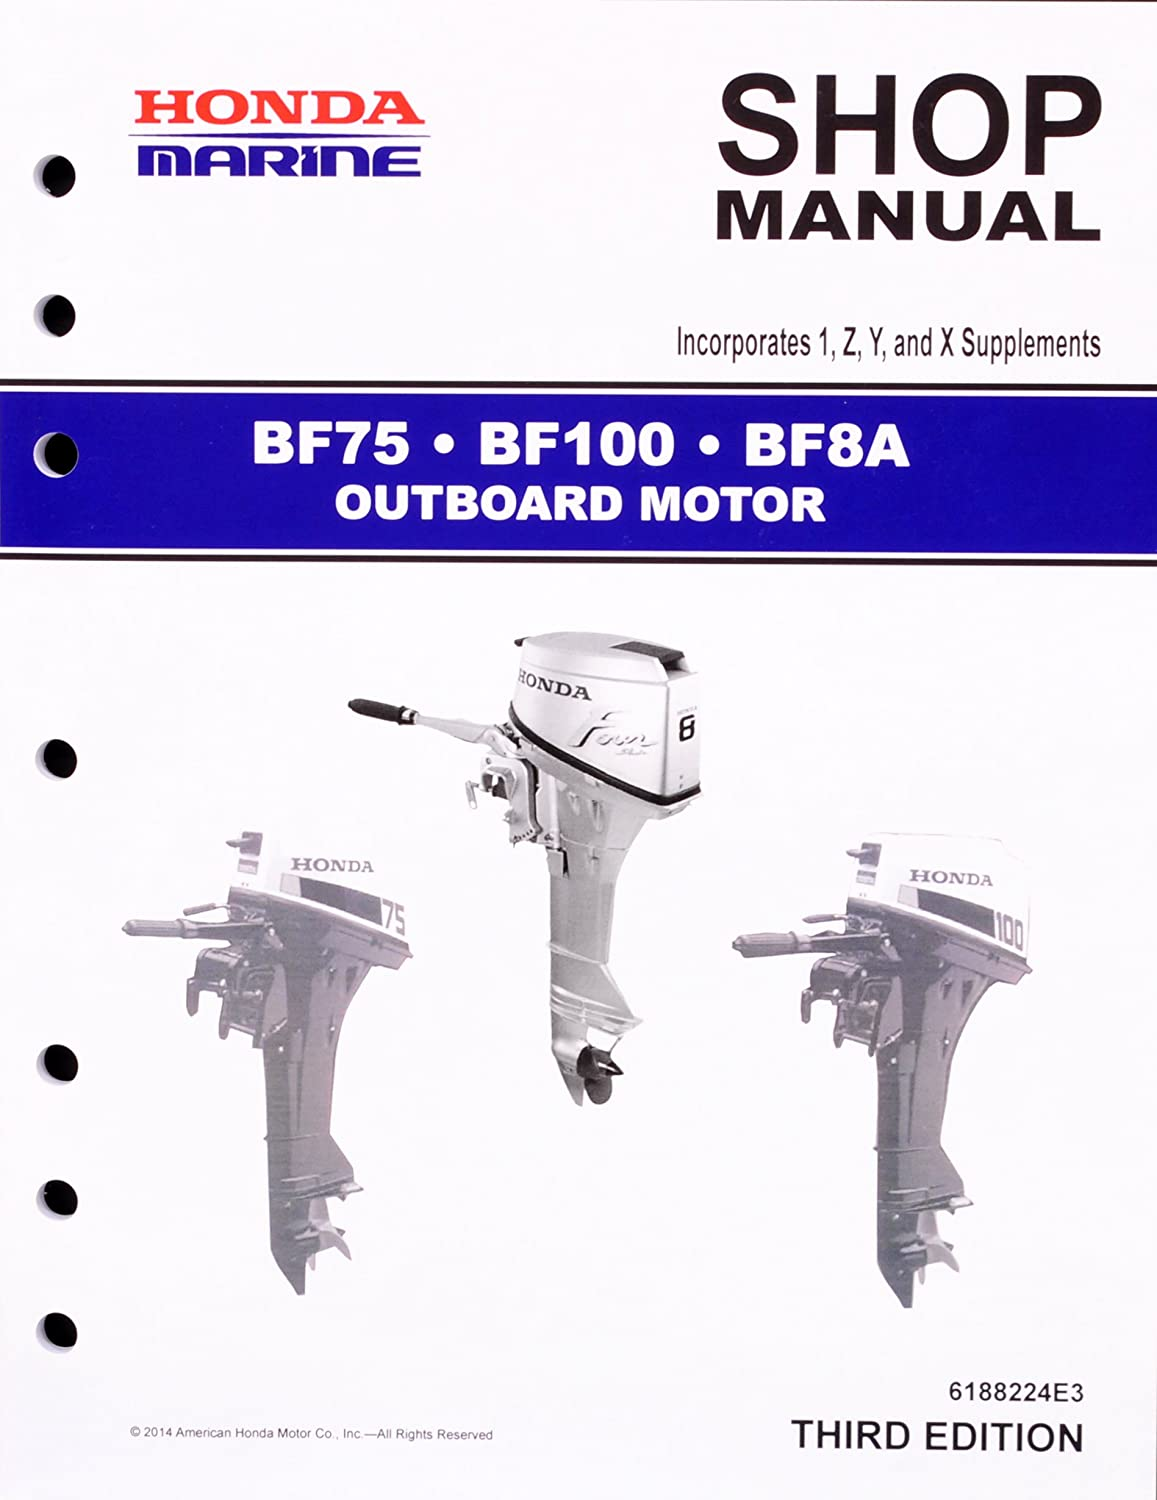 Amazon.com : Honda BF75 BF100 BF8 Marine Outboard Service Repair Shop Manual  : Sports & Outdoors